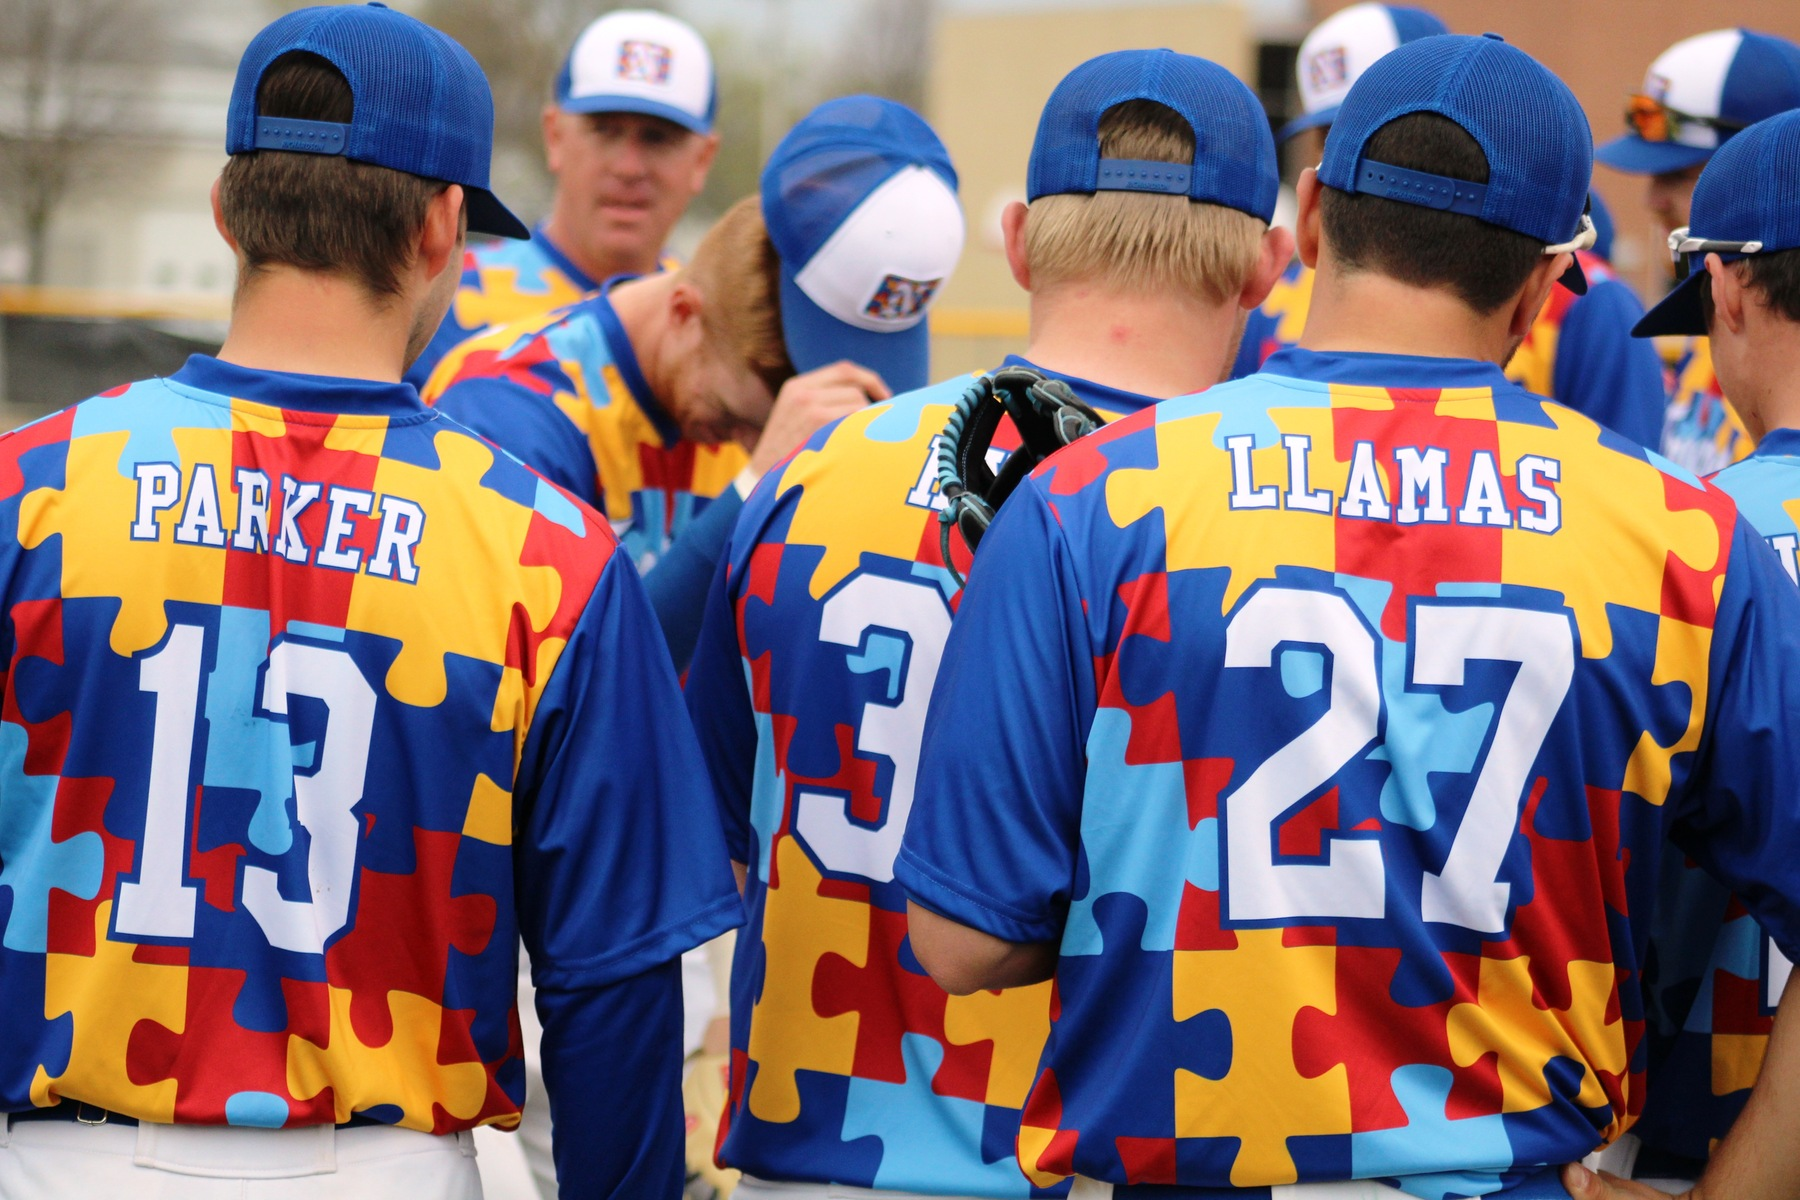 The NIACC baseball team gets ready for Monday's Autism Awareness game at Roosevelt Field on Monday.